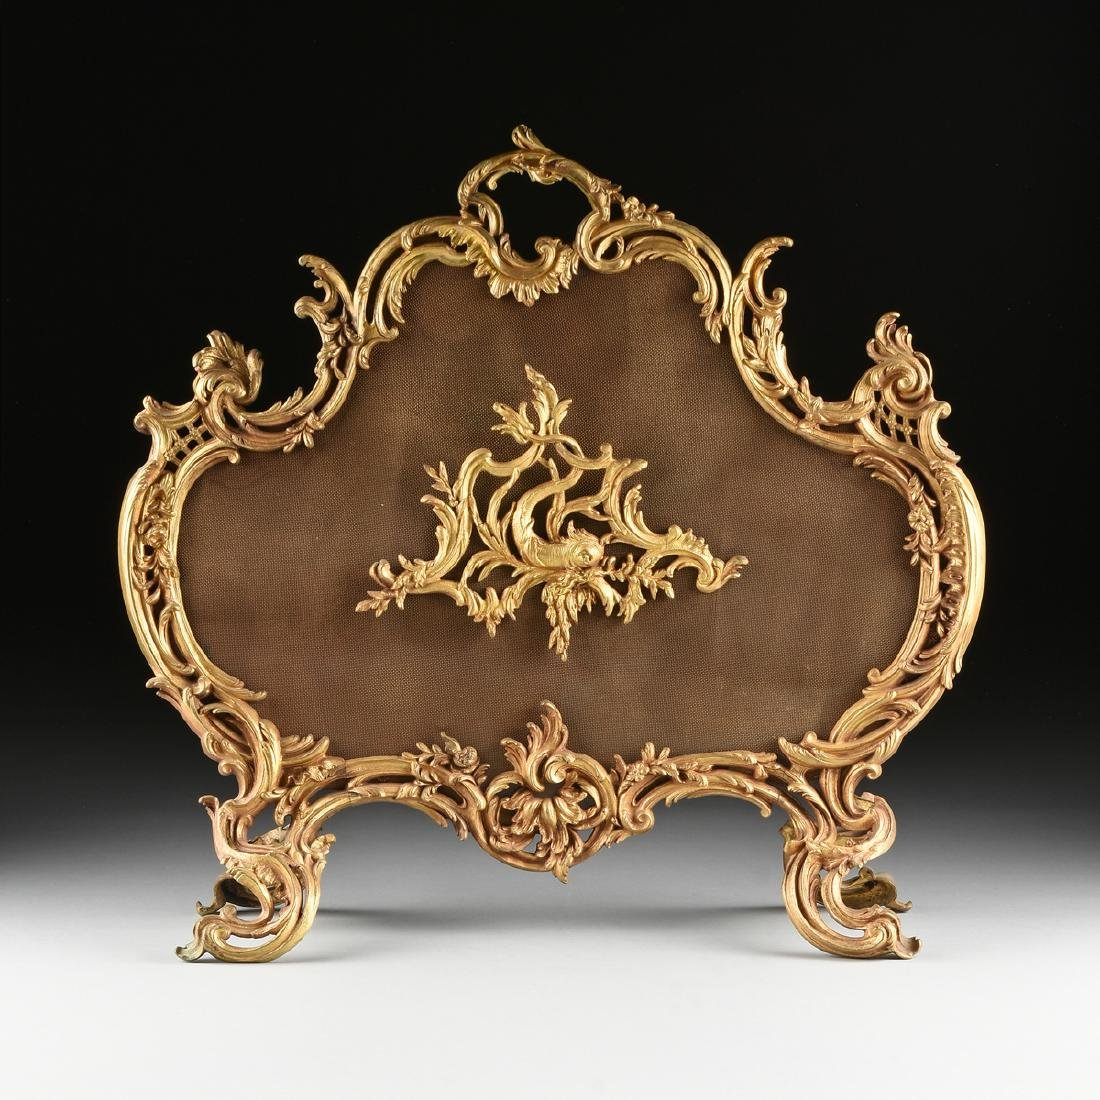 A FRENCH LOUIS XV STYLE GILT BRASS FIRE SCREEN, SECOND